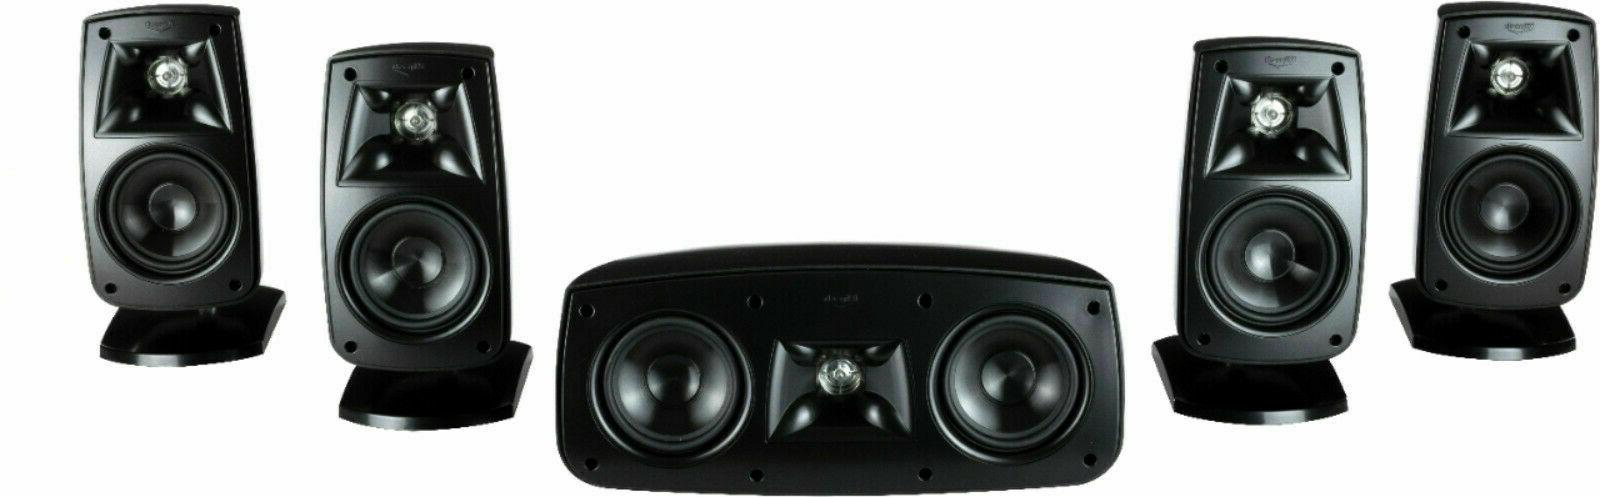 ht50 home theater surround sound system 50w